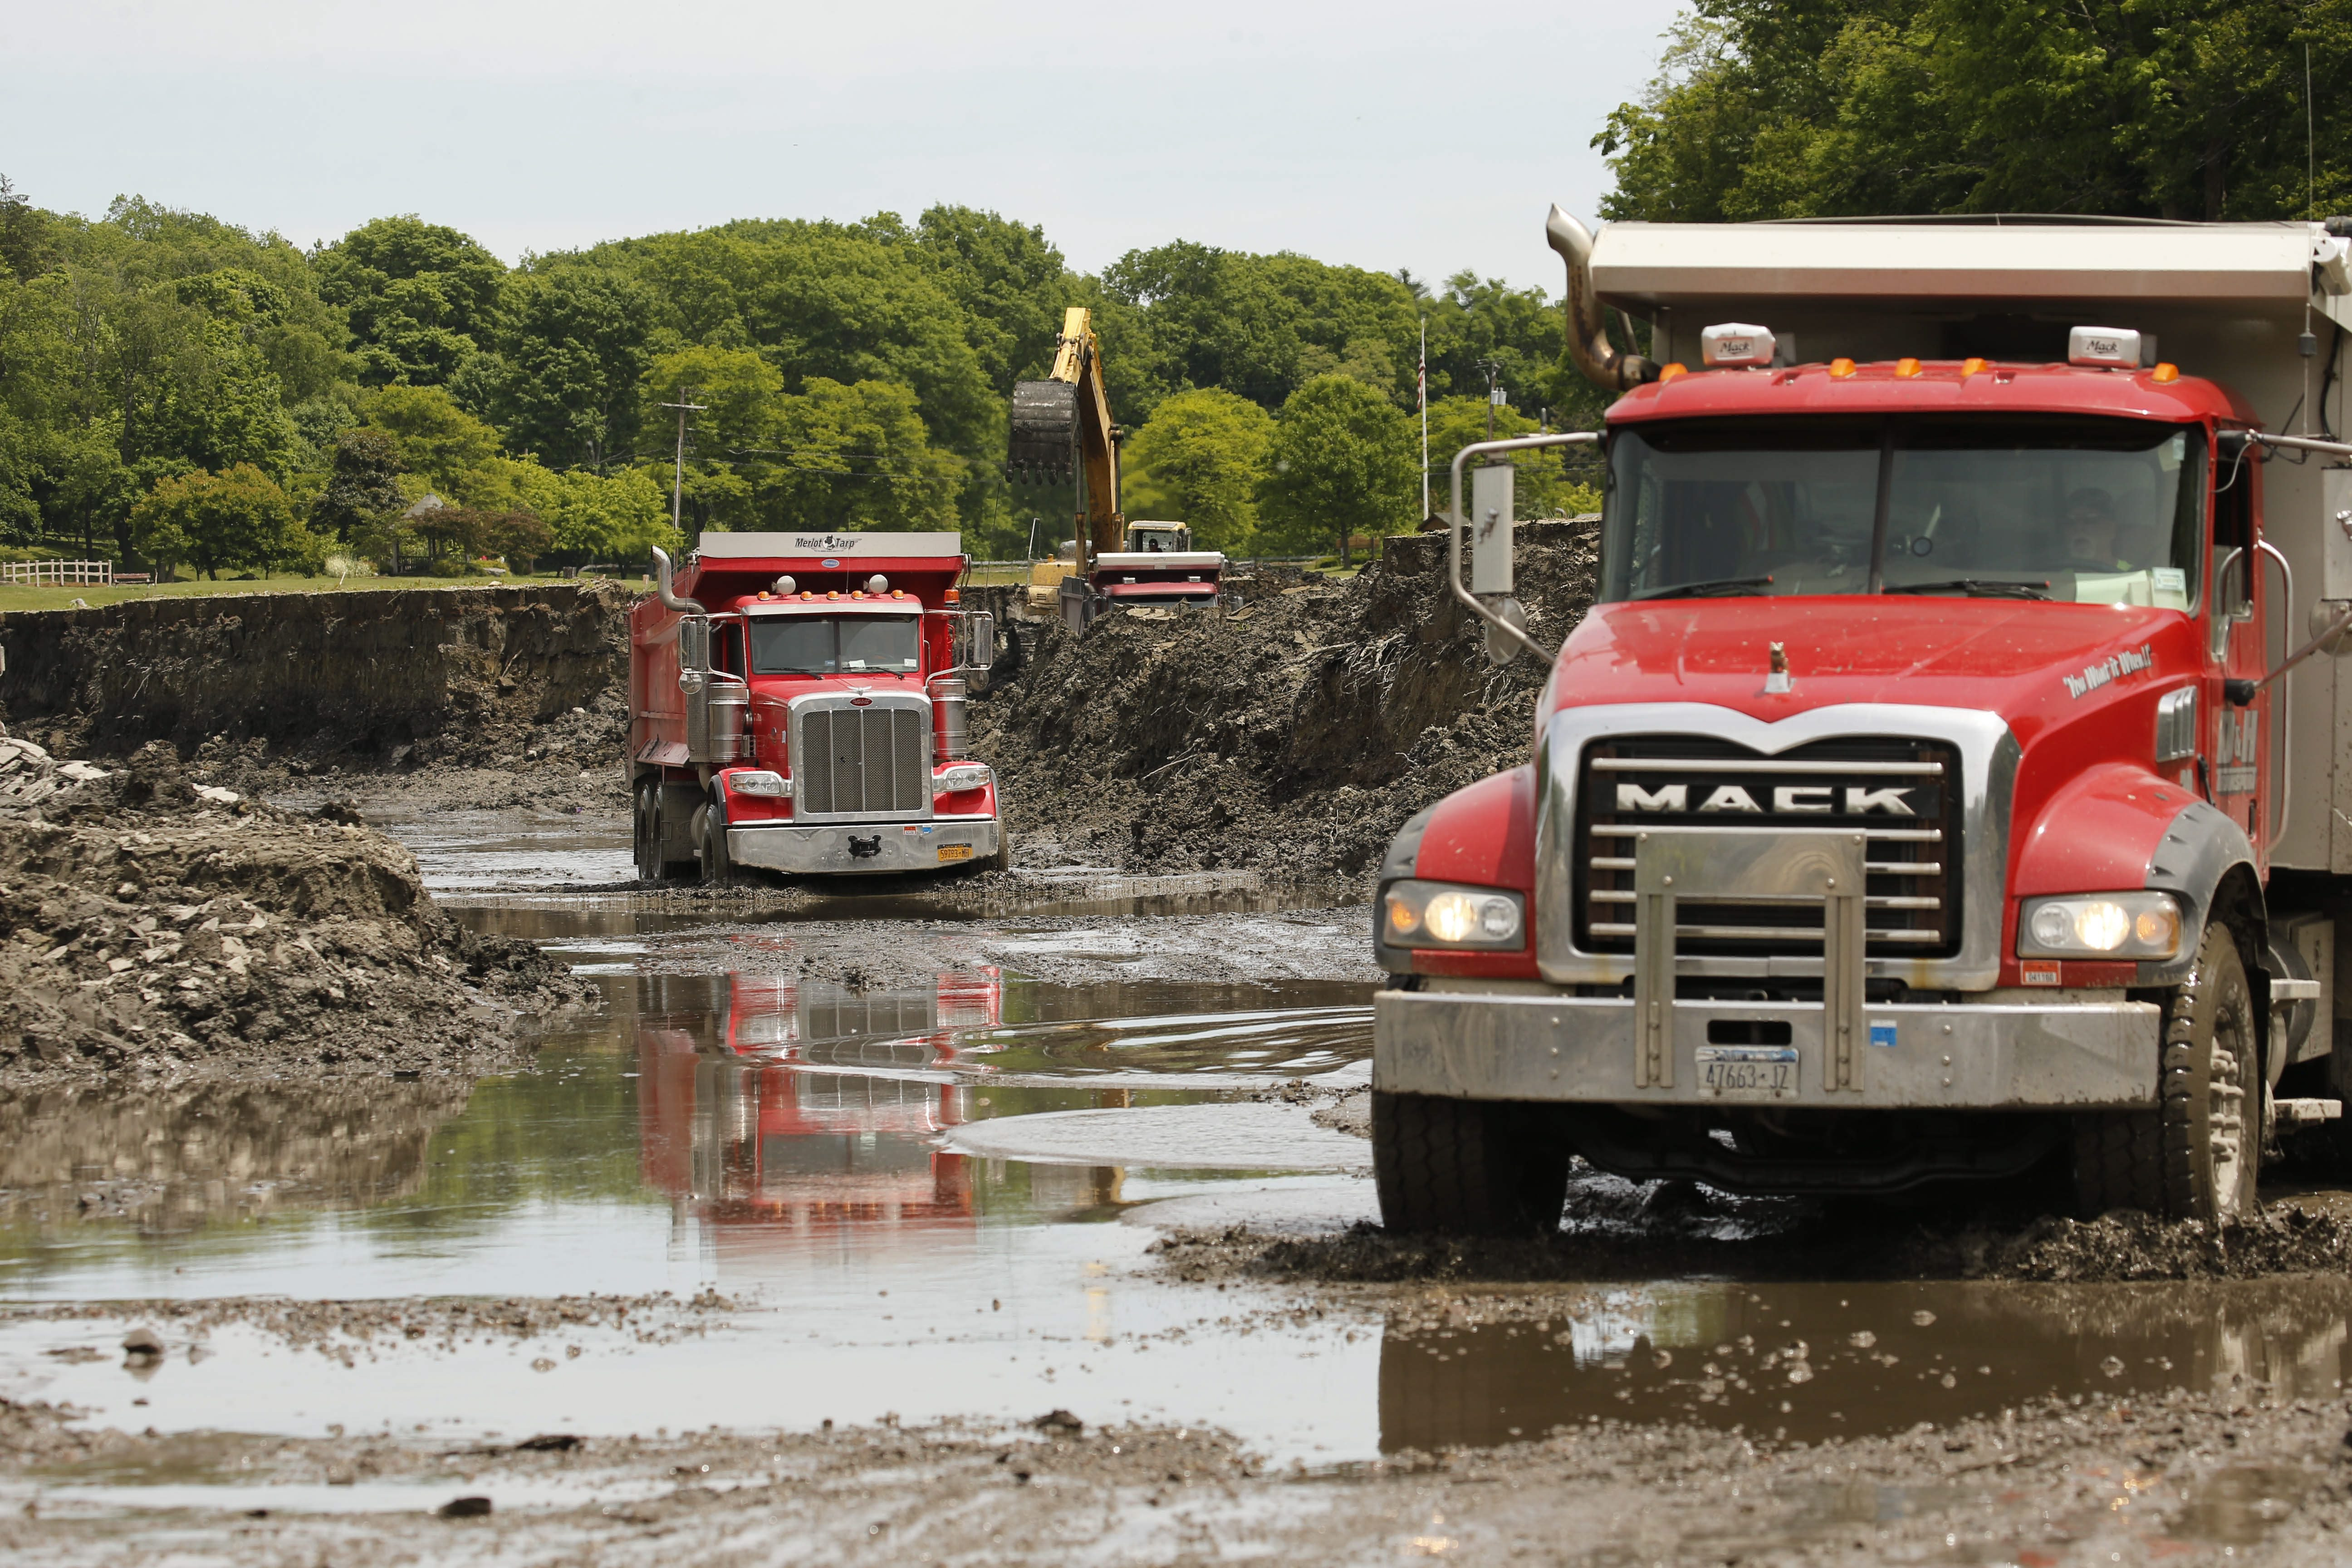 Dump trucks haul away sediment as crews excavate silt from the dried lake bed of Green Lake in Orchard Park on Friday, June 10, 2016. (Derek Gee/Buffalo News)